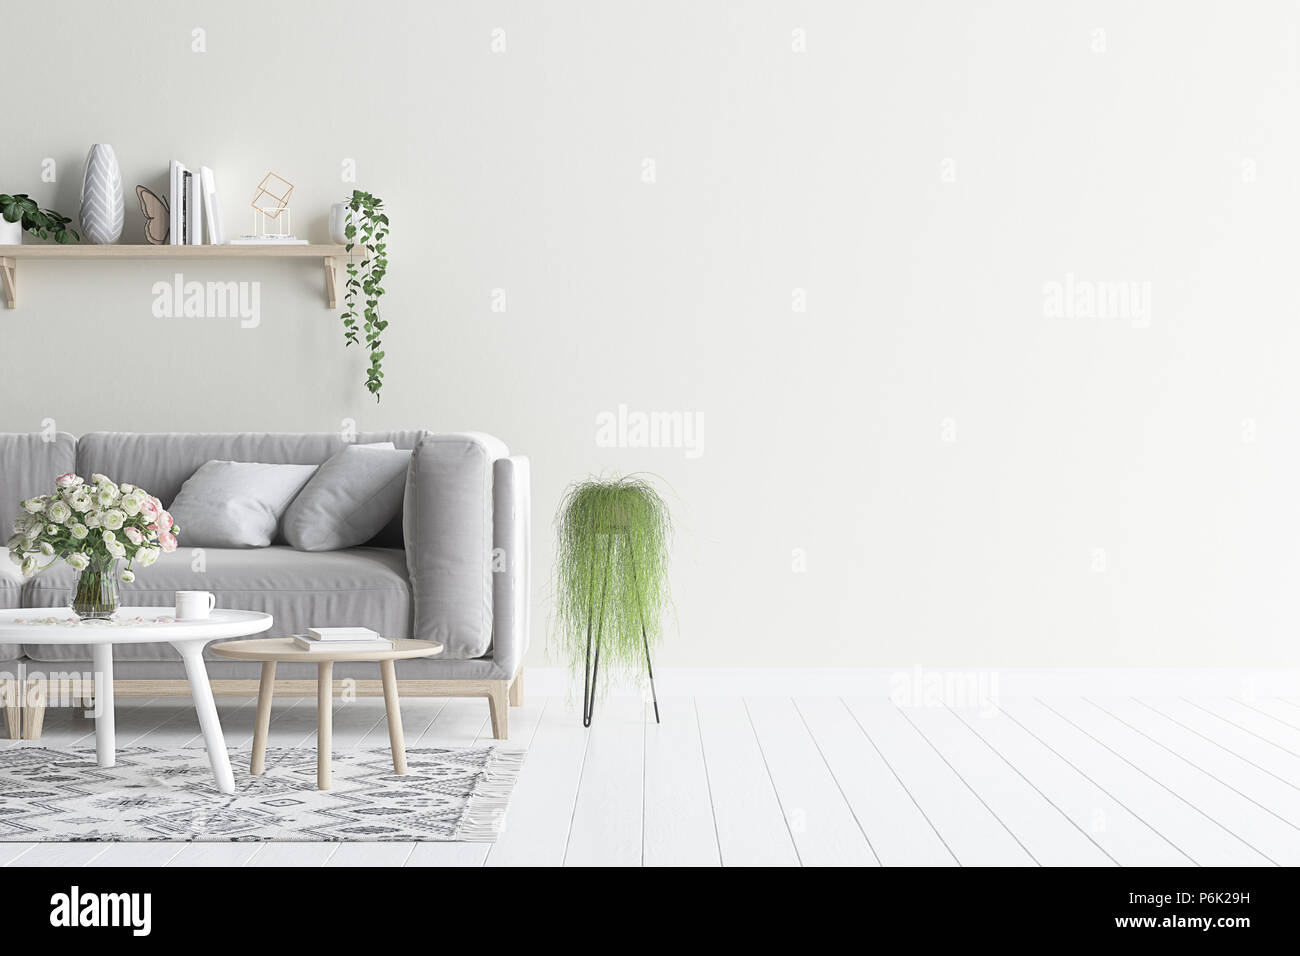 Living Room Interior Wall Mock Up With Grey Velvet Sofa And